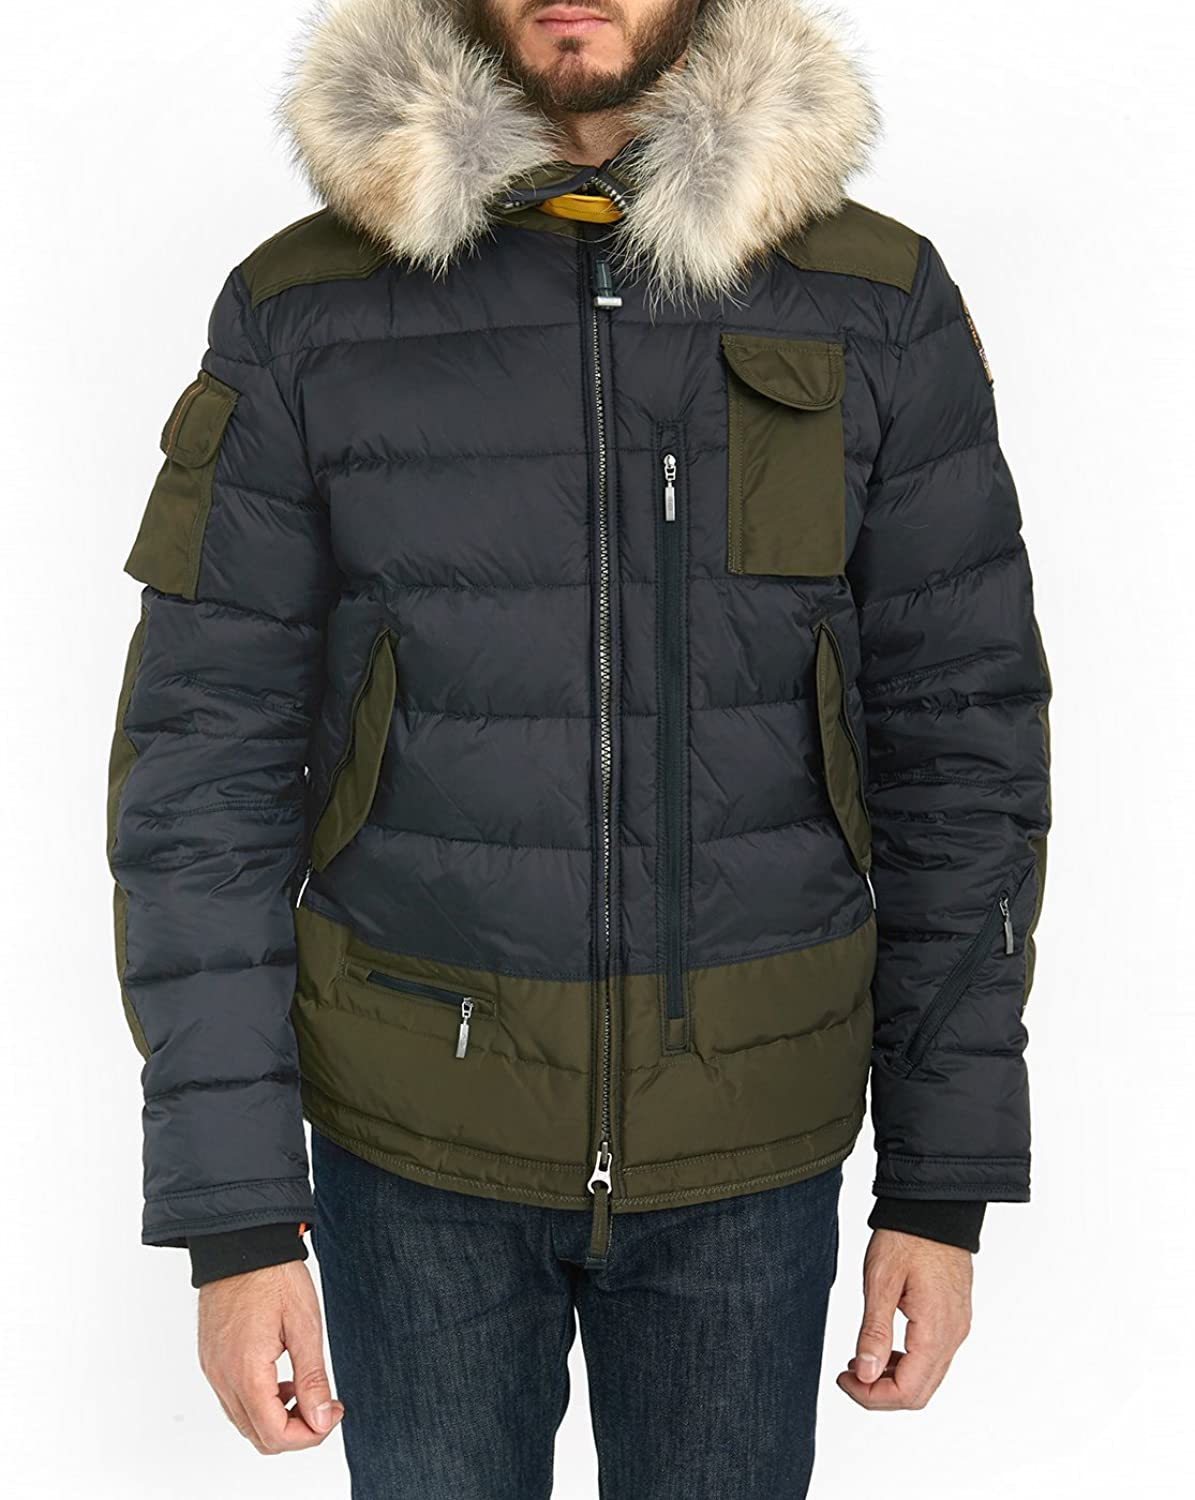 Parajumpers THIRD SKIMASTER Jacket - Mens